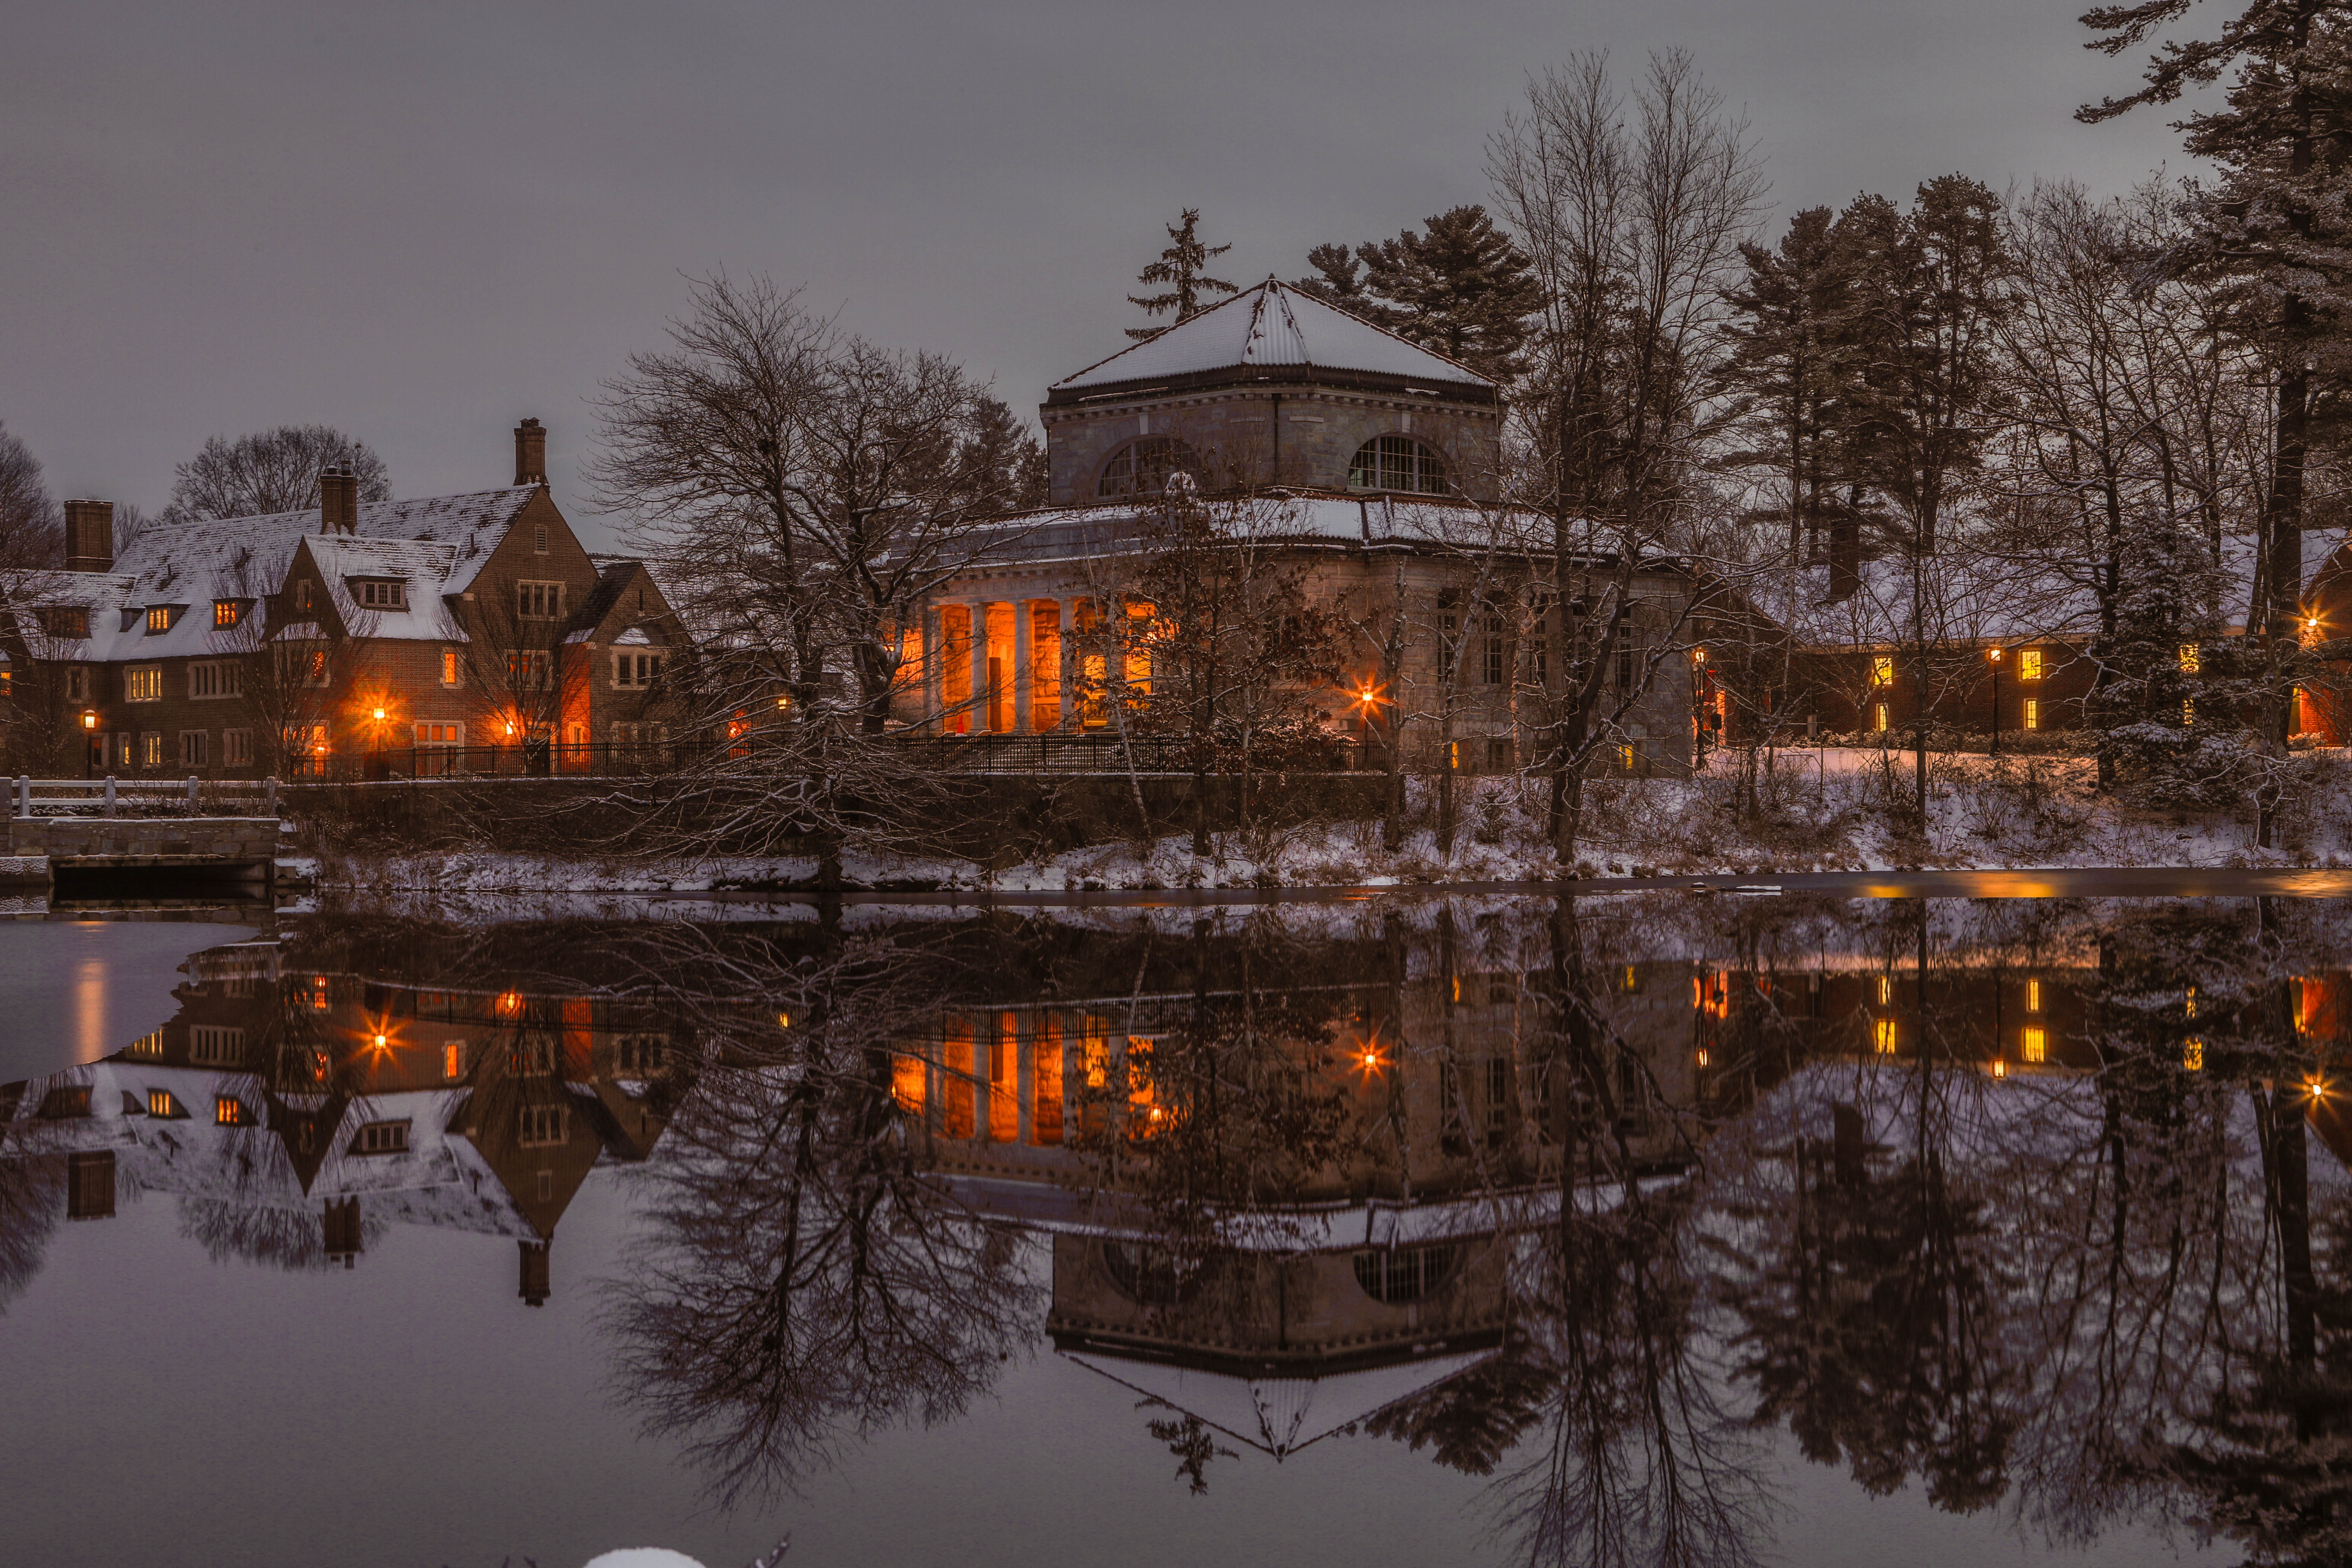 Snowy lake showing reflection of lit up campus, St. Paul's School